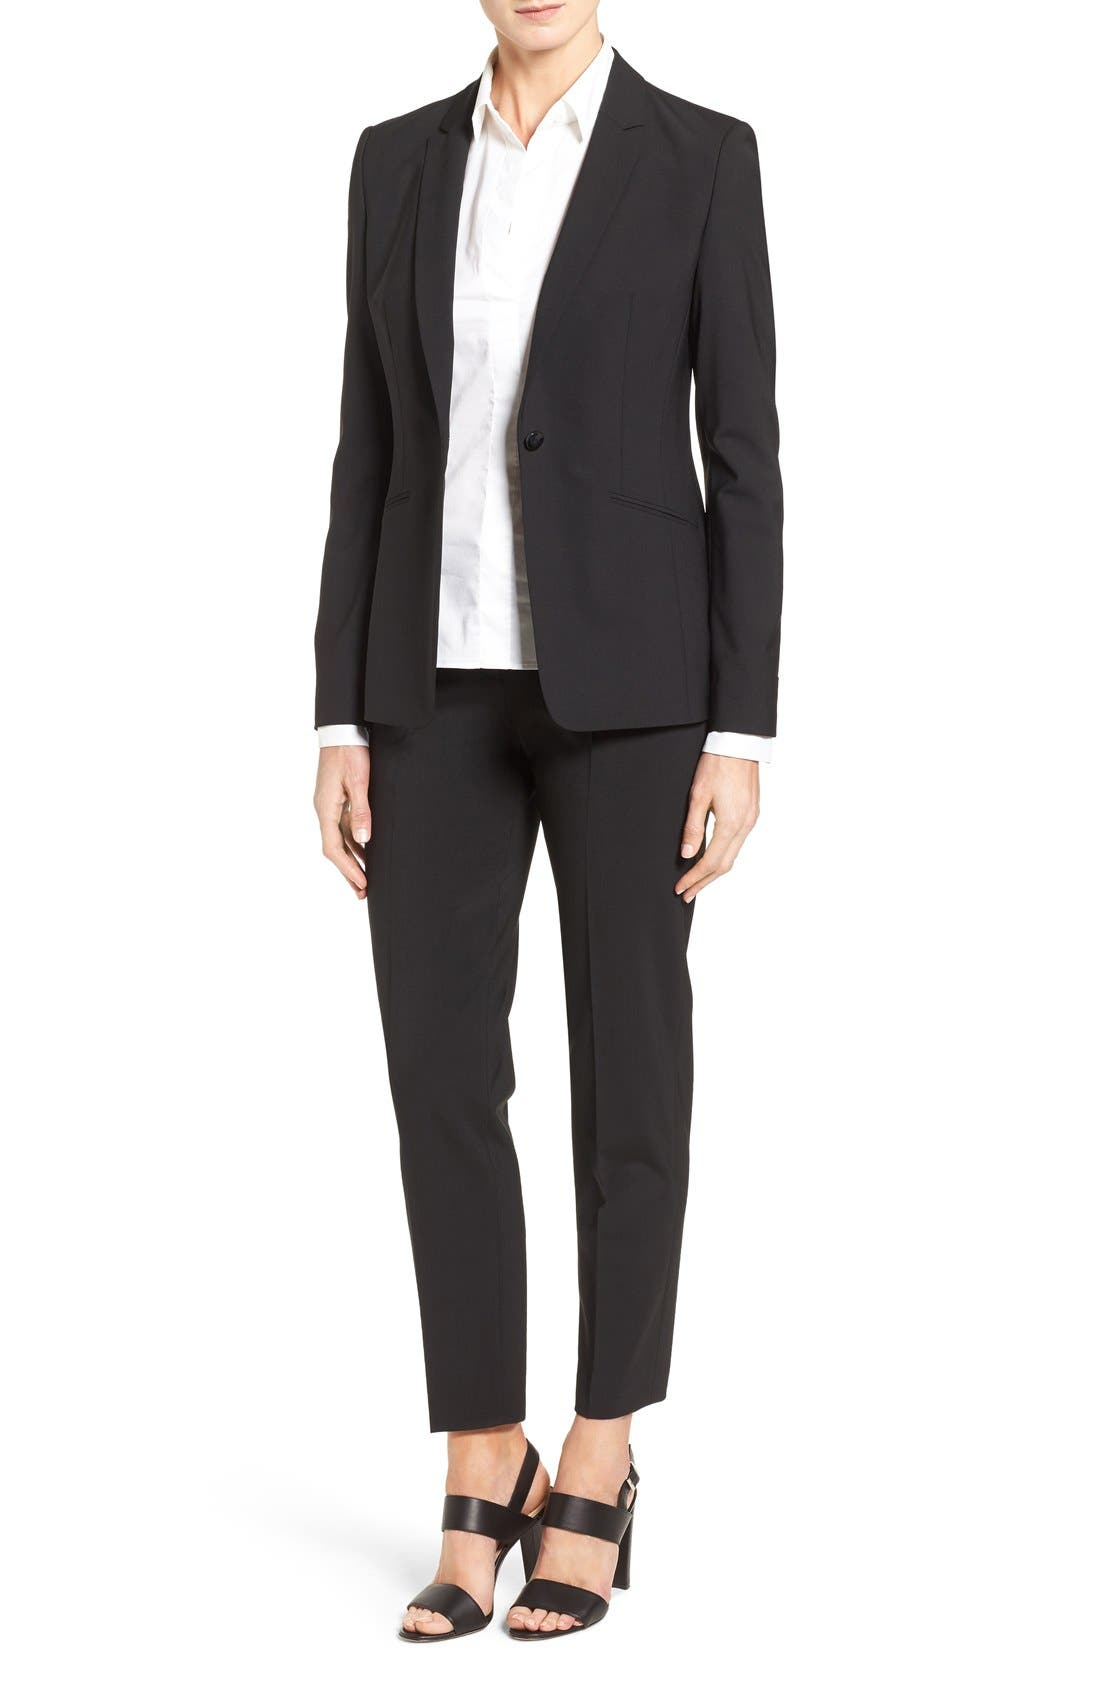 BOSS, Jabina Tropical Stretch Wool Jacket, Alternate thumbnail 11, color, BLACK